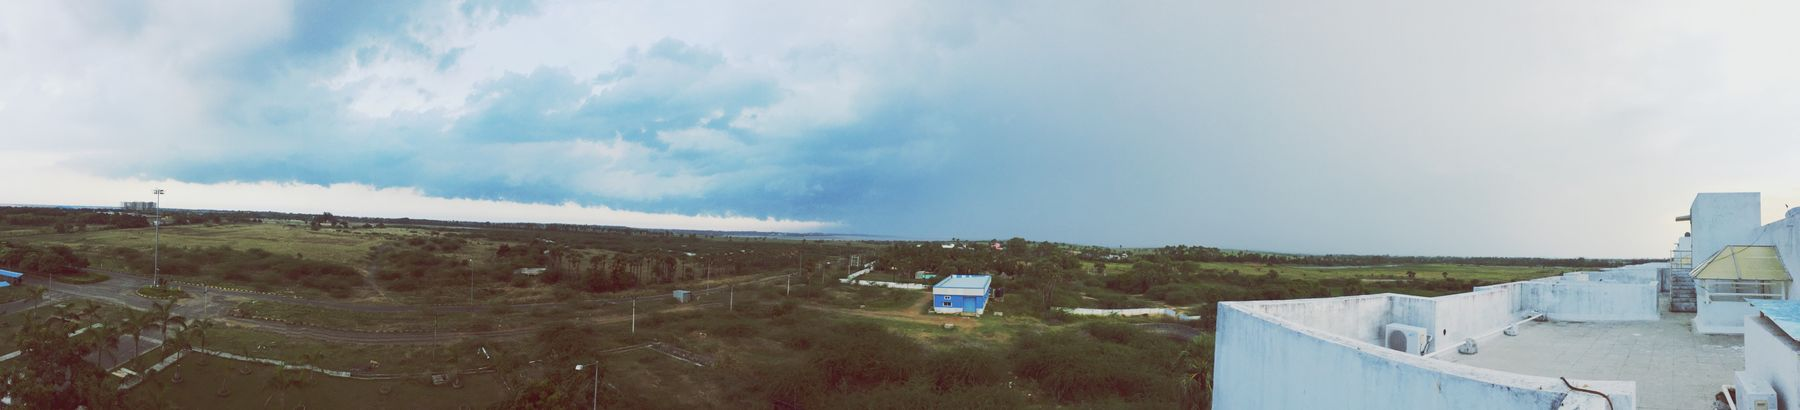 Panorama rains. Tranquil Scene Landscape Scenics Tranquility Sky Panoramic Beauty In Nature Cloud Mountain Nature Non-urban Scene Solitude Remote Horizon Over Land Vacations Cloud - Sky Day Valley Outdoors Mountain Range